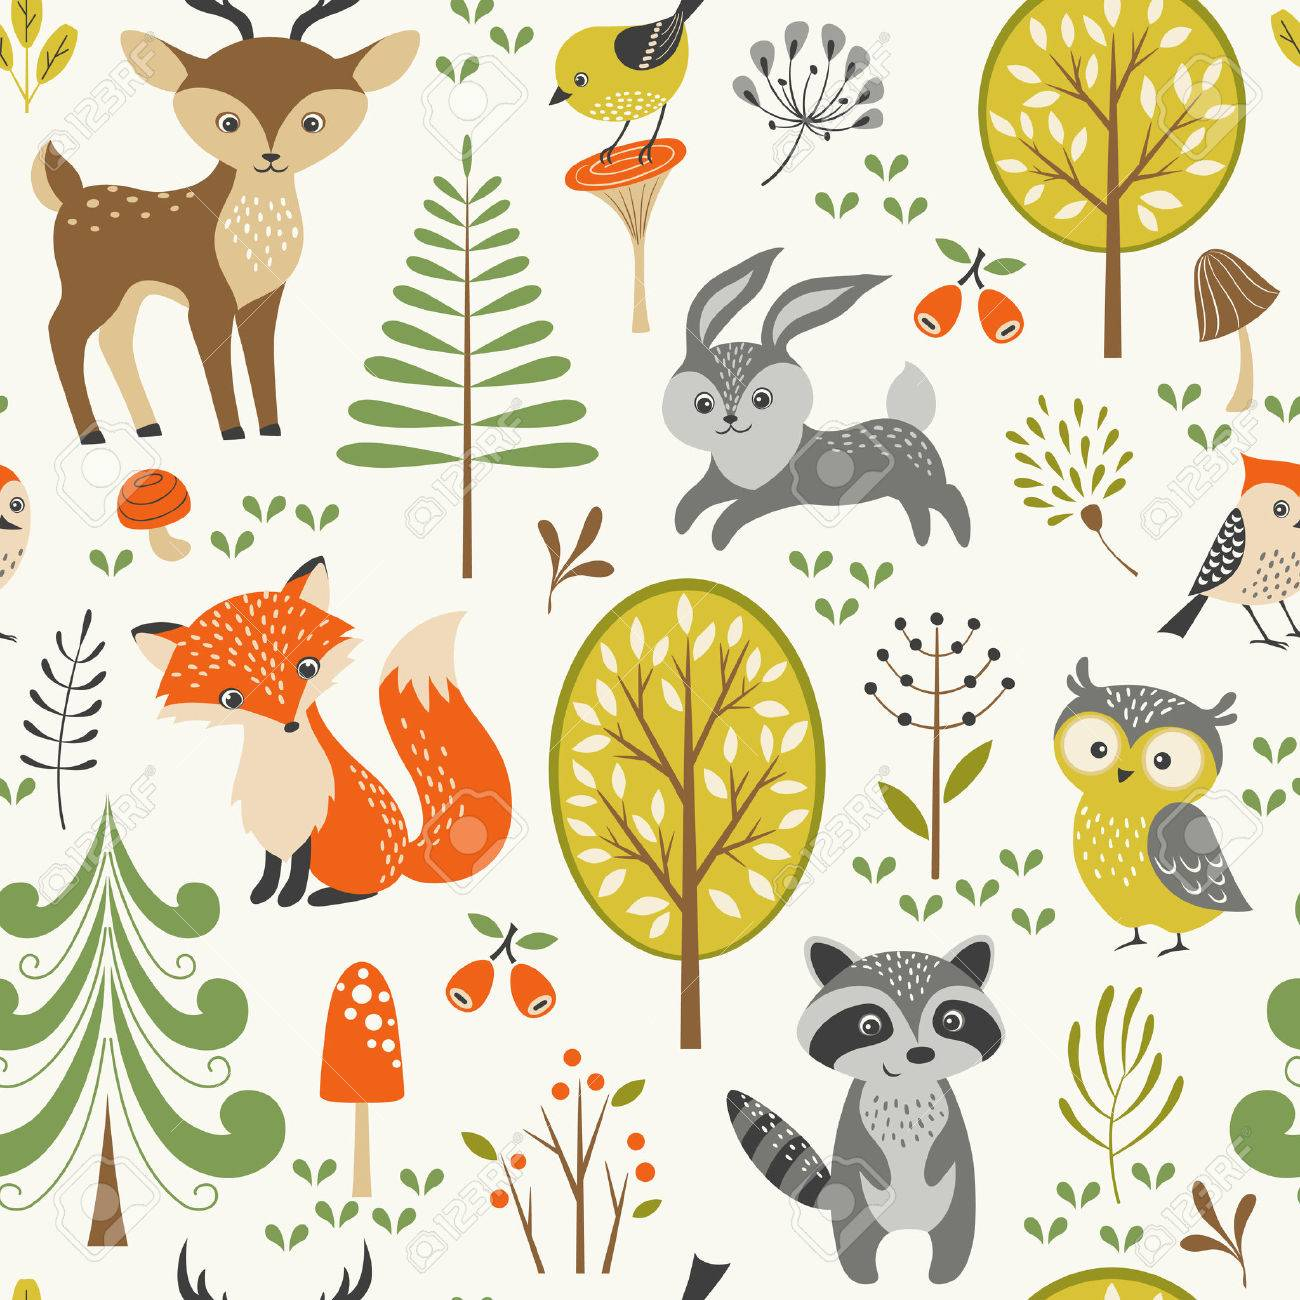 Seamless summer forest pattern with cute woodland animals, trees, mushrooms and berries. - 41214417